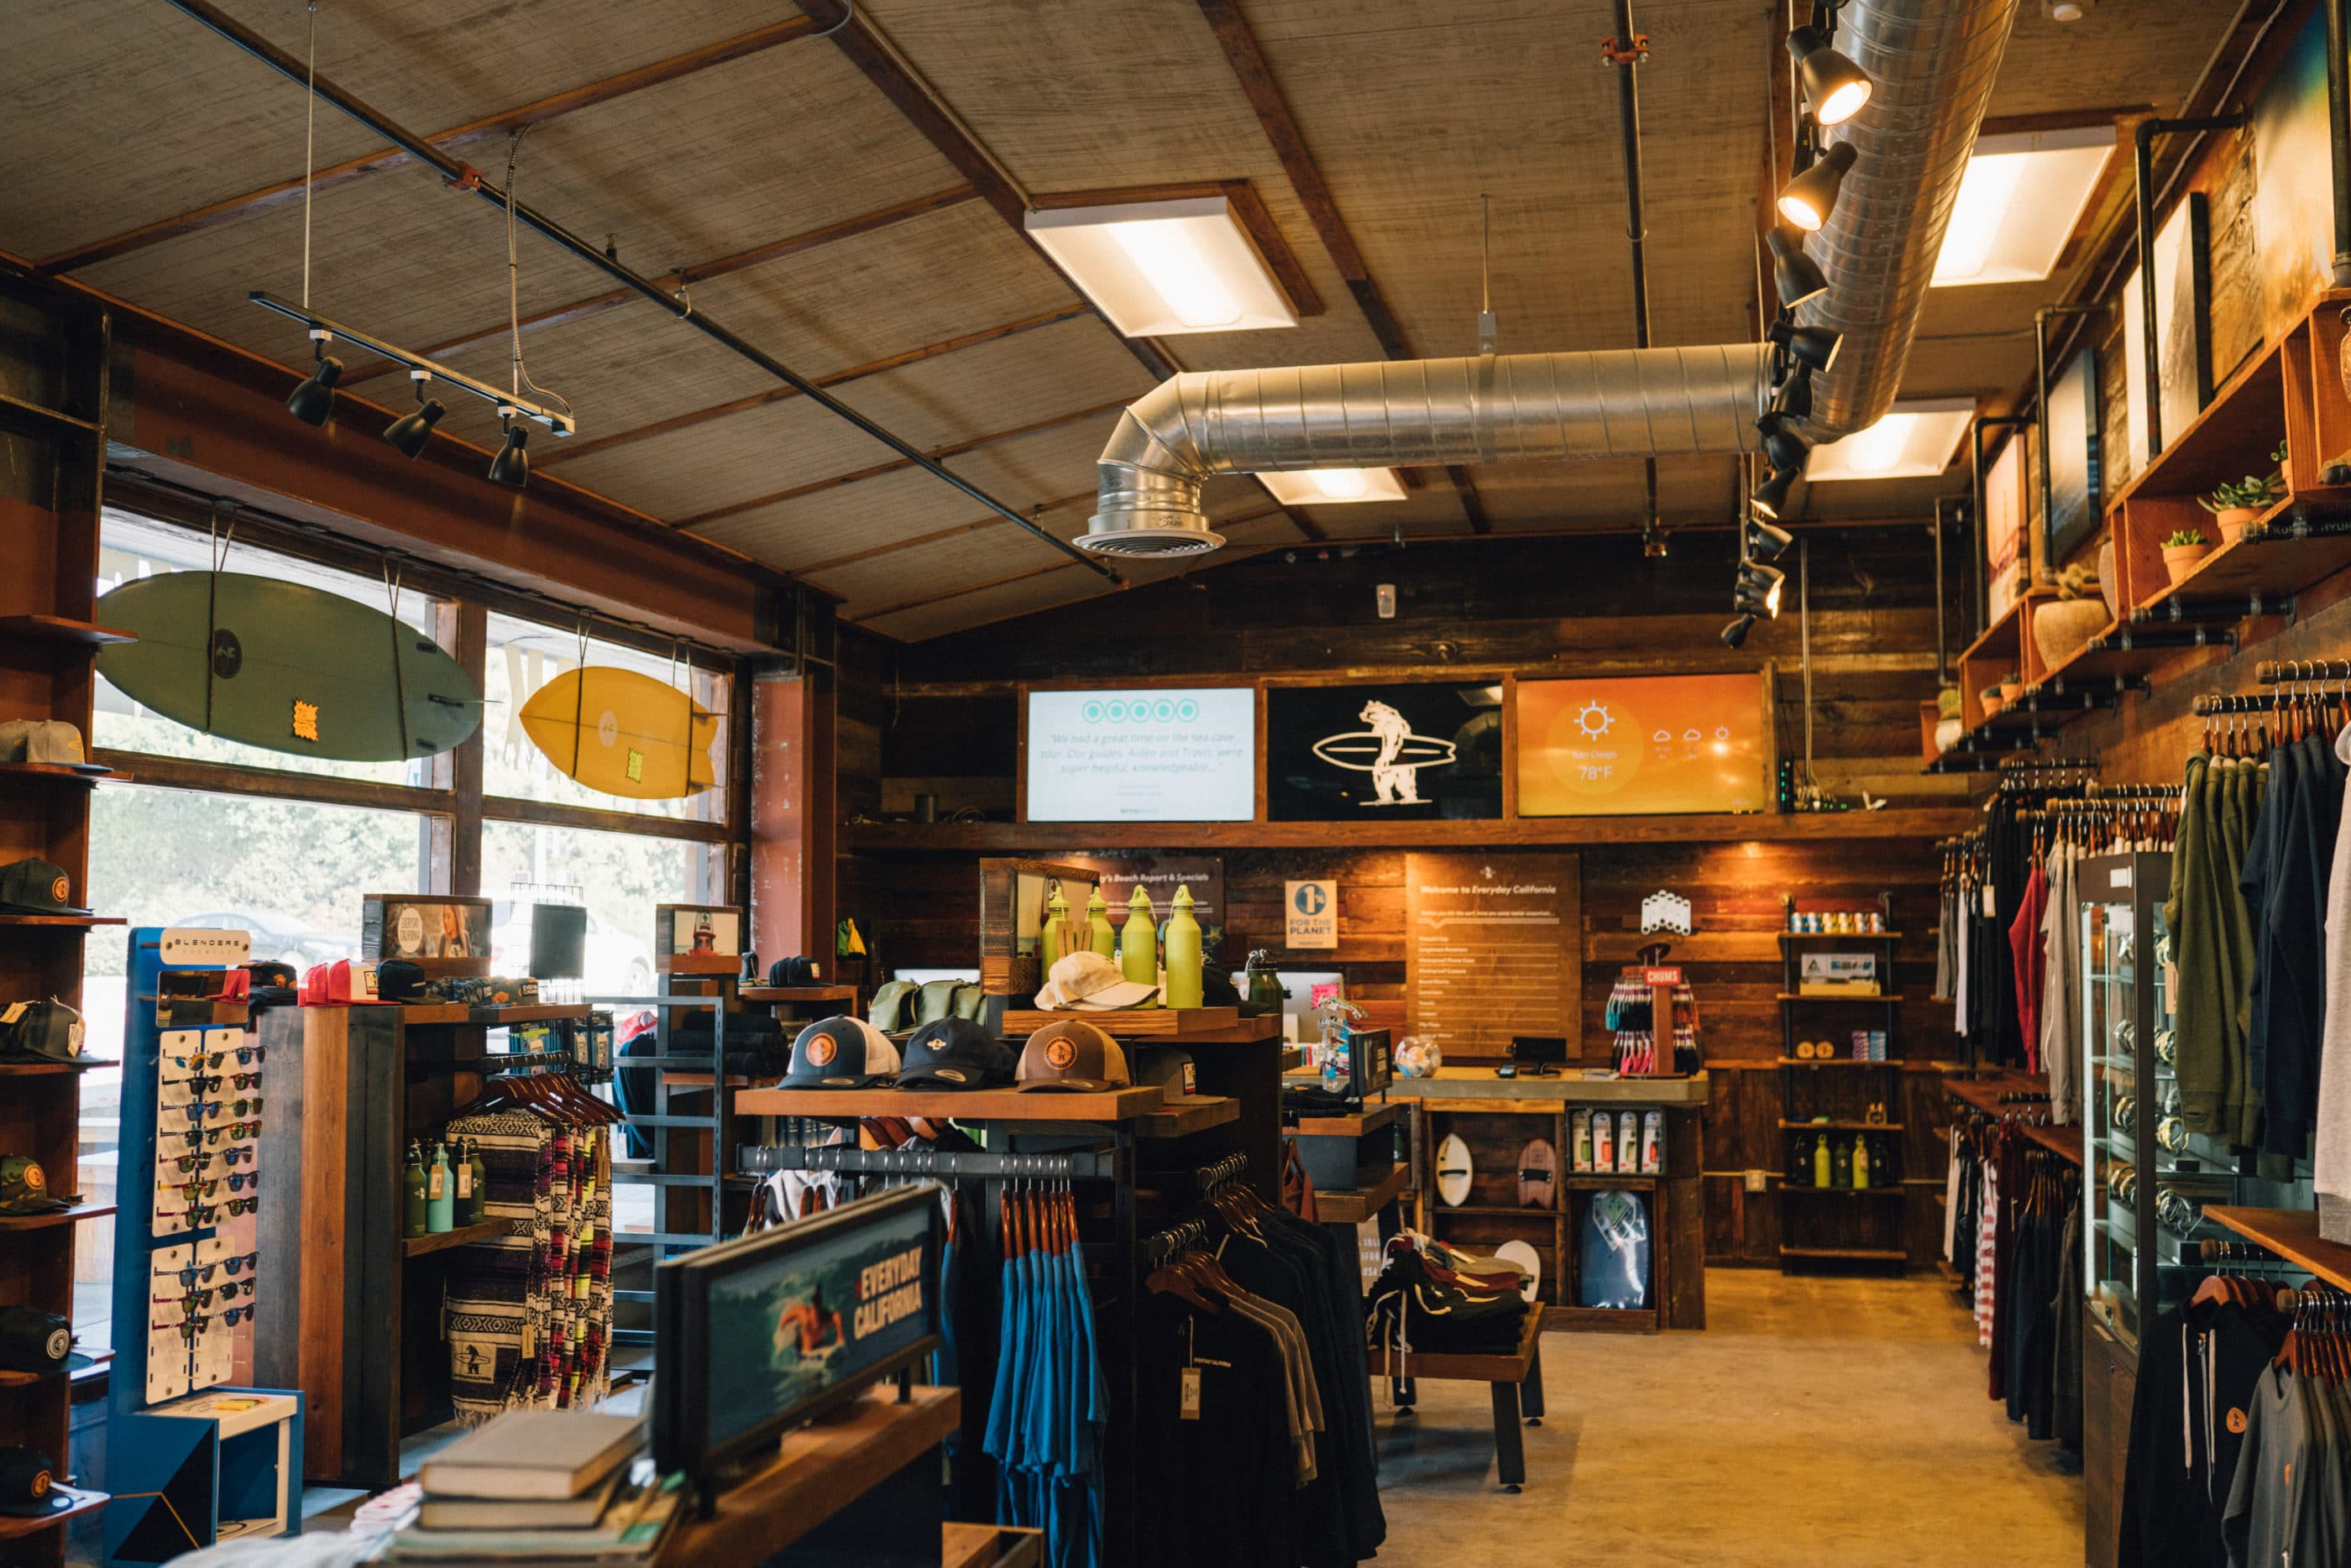 The interior of the Everyday California shop in La Jolla Shores.